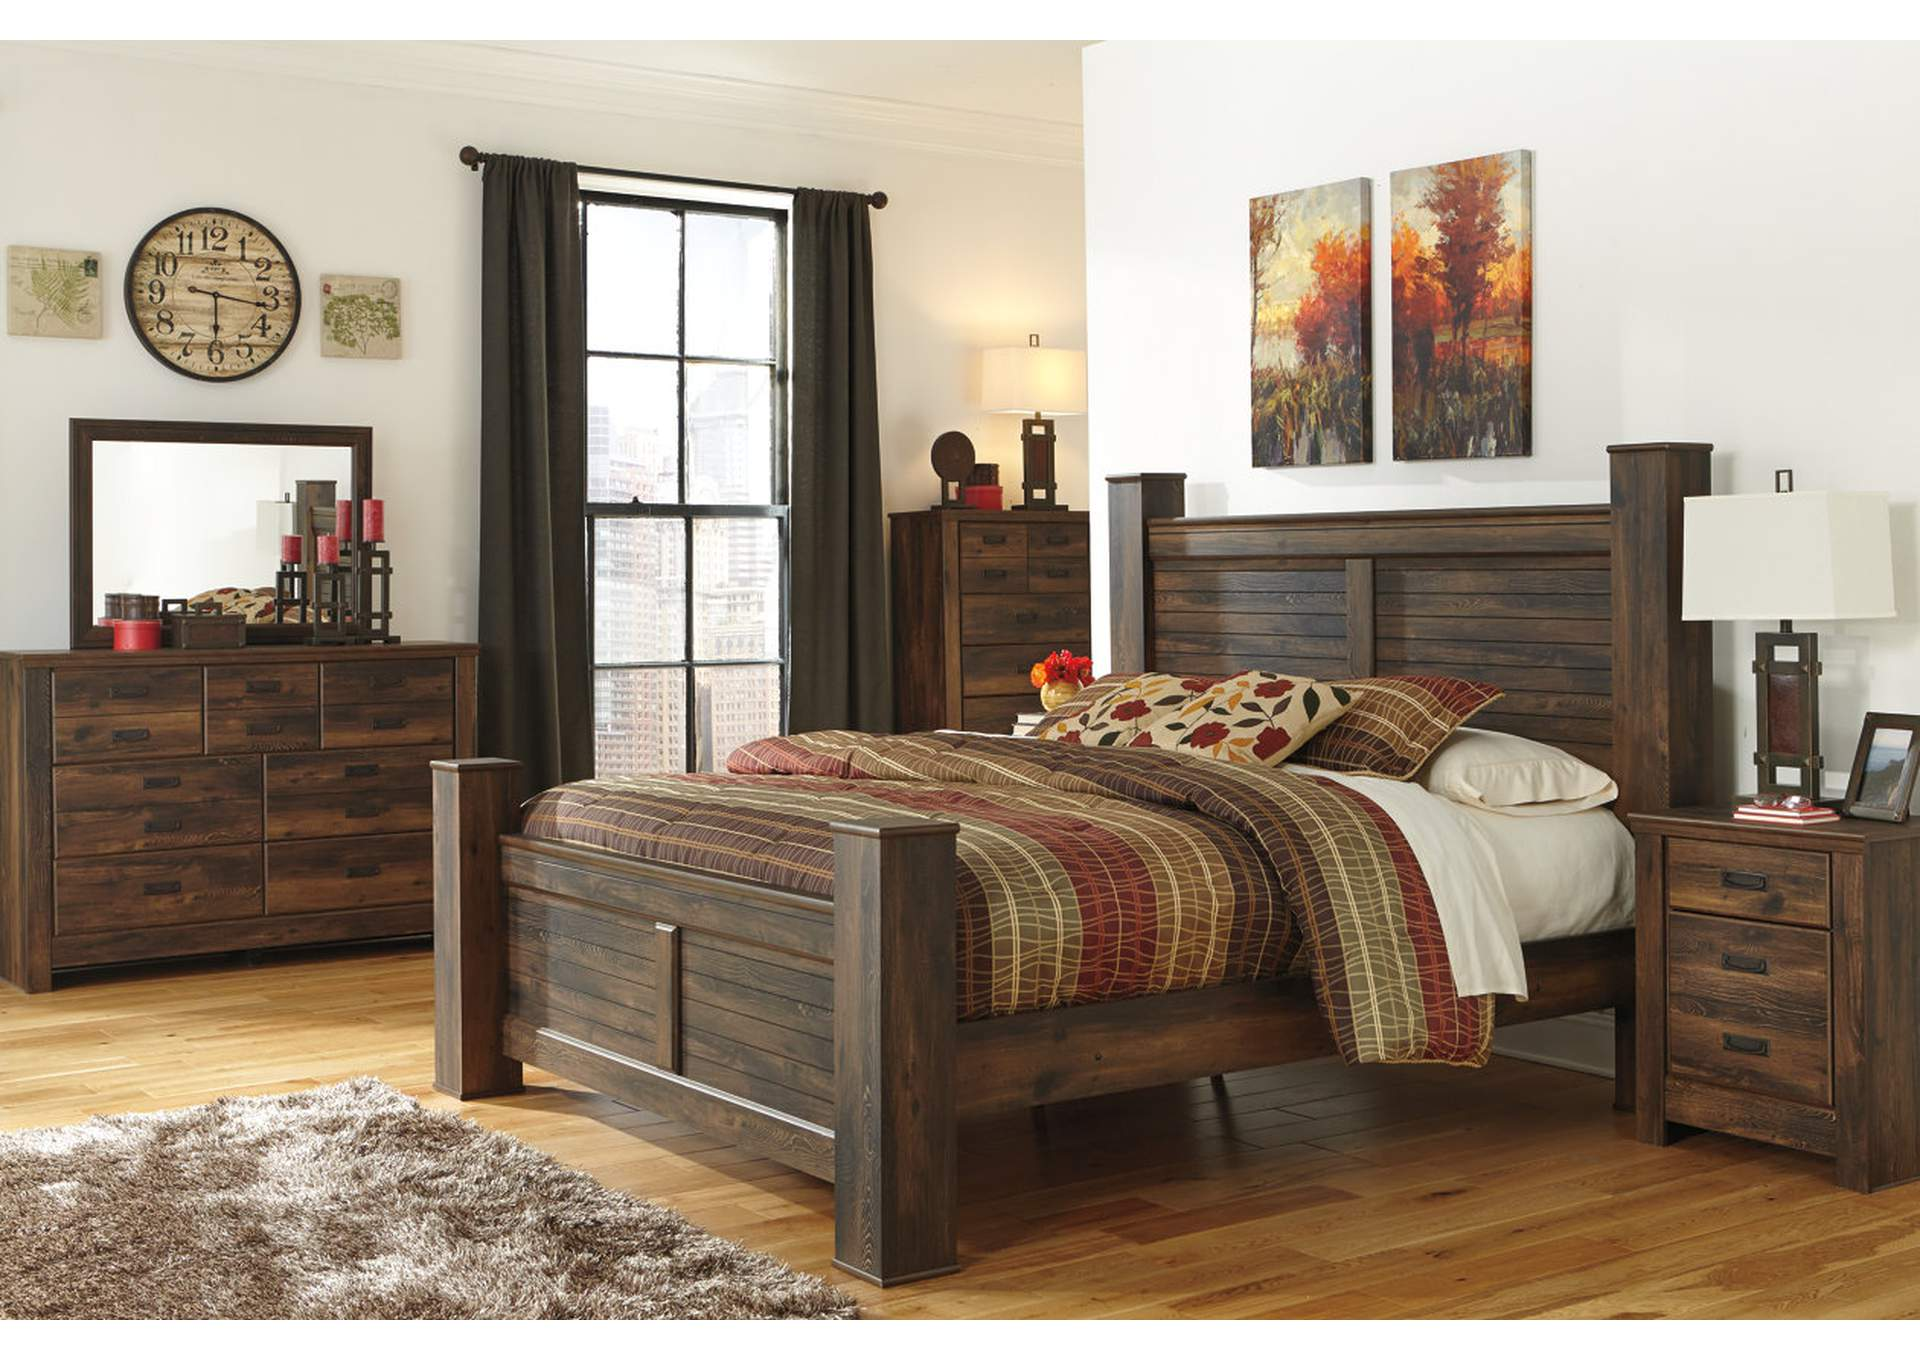 Quinden King Poster Bed w/Dresser, Mirror & Drawer Chest,Signature Design By Ashley